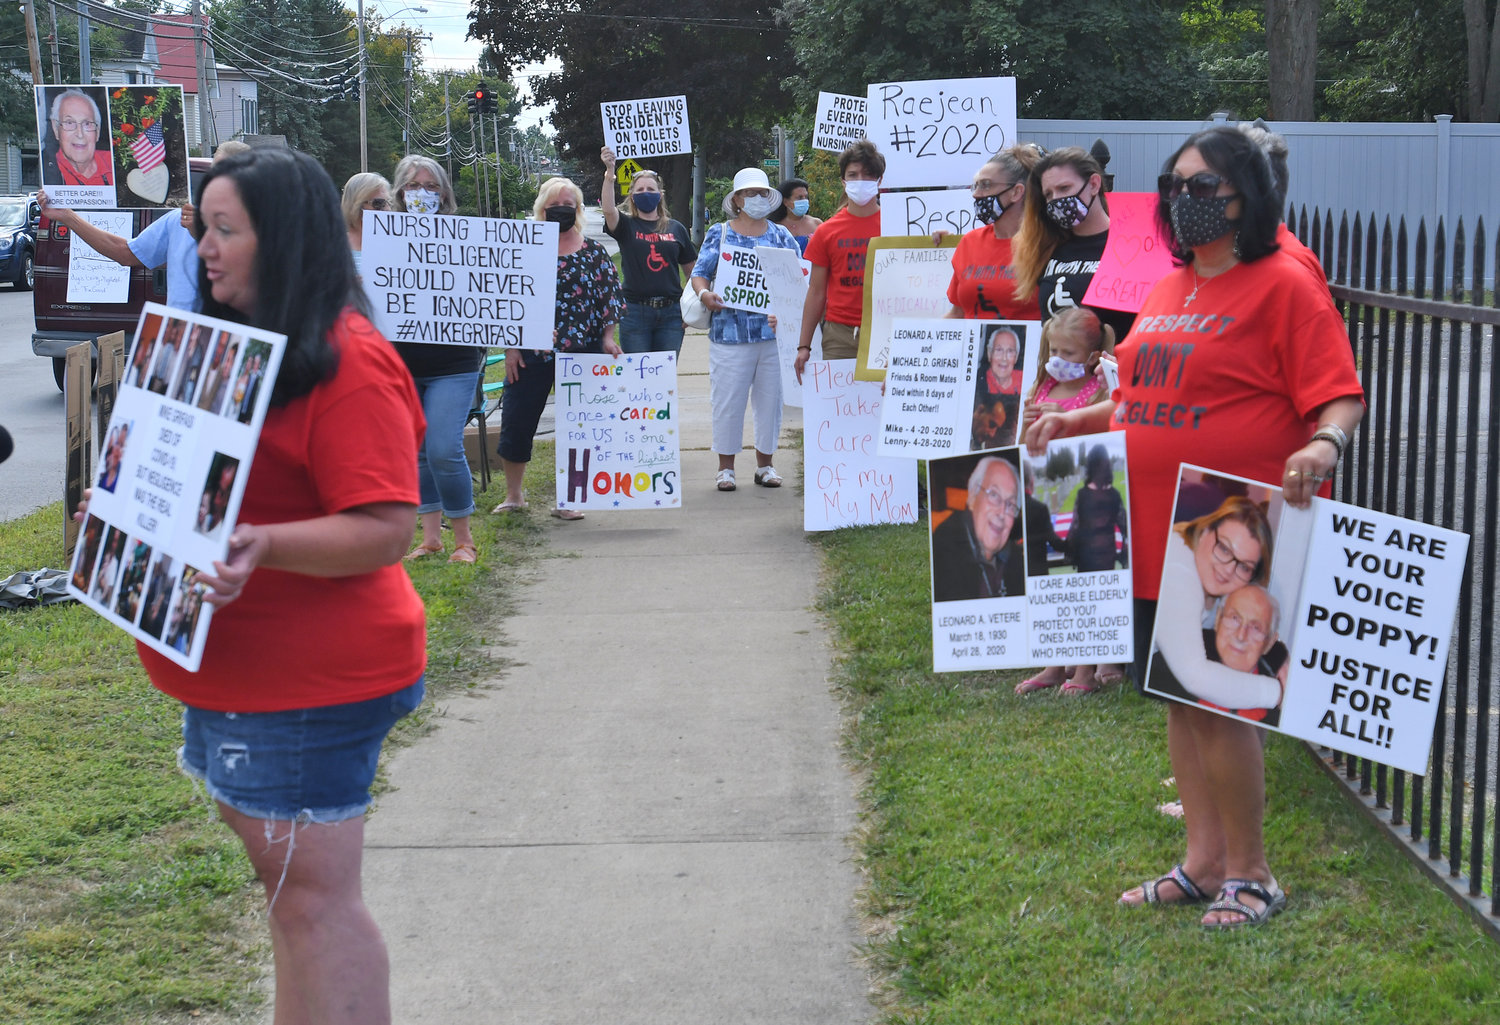 SEEKING CHANGE — Demonstrators gathered outside The Grand on North James Street Saturday afternoon to call attention to care at the nursing facility.